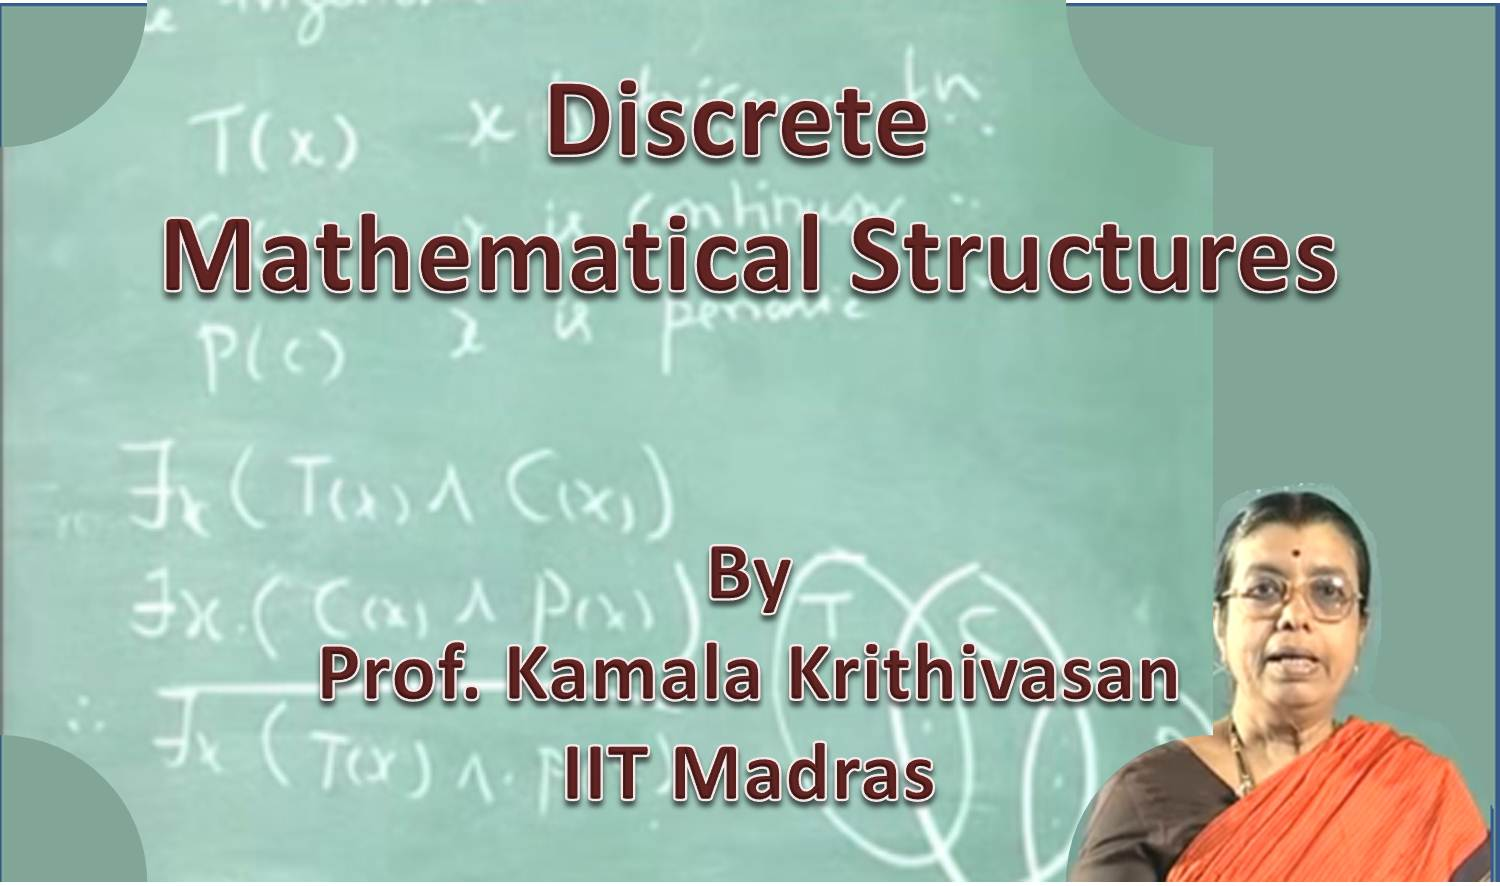 http://study.aisectonline.com/images/SubCategory/Video Lectures on Discrete Mathematical Structures by Prof. Kamala Krithivasan,  IIT Madras.jpg